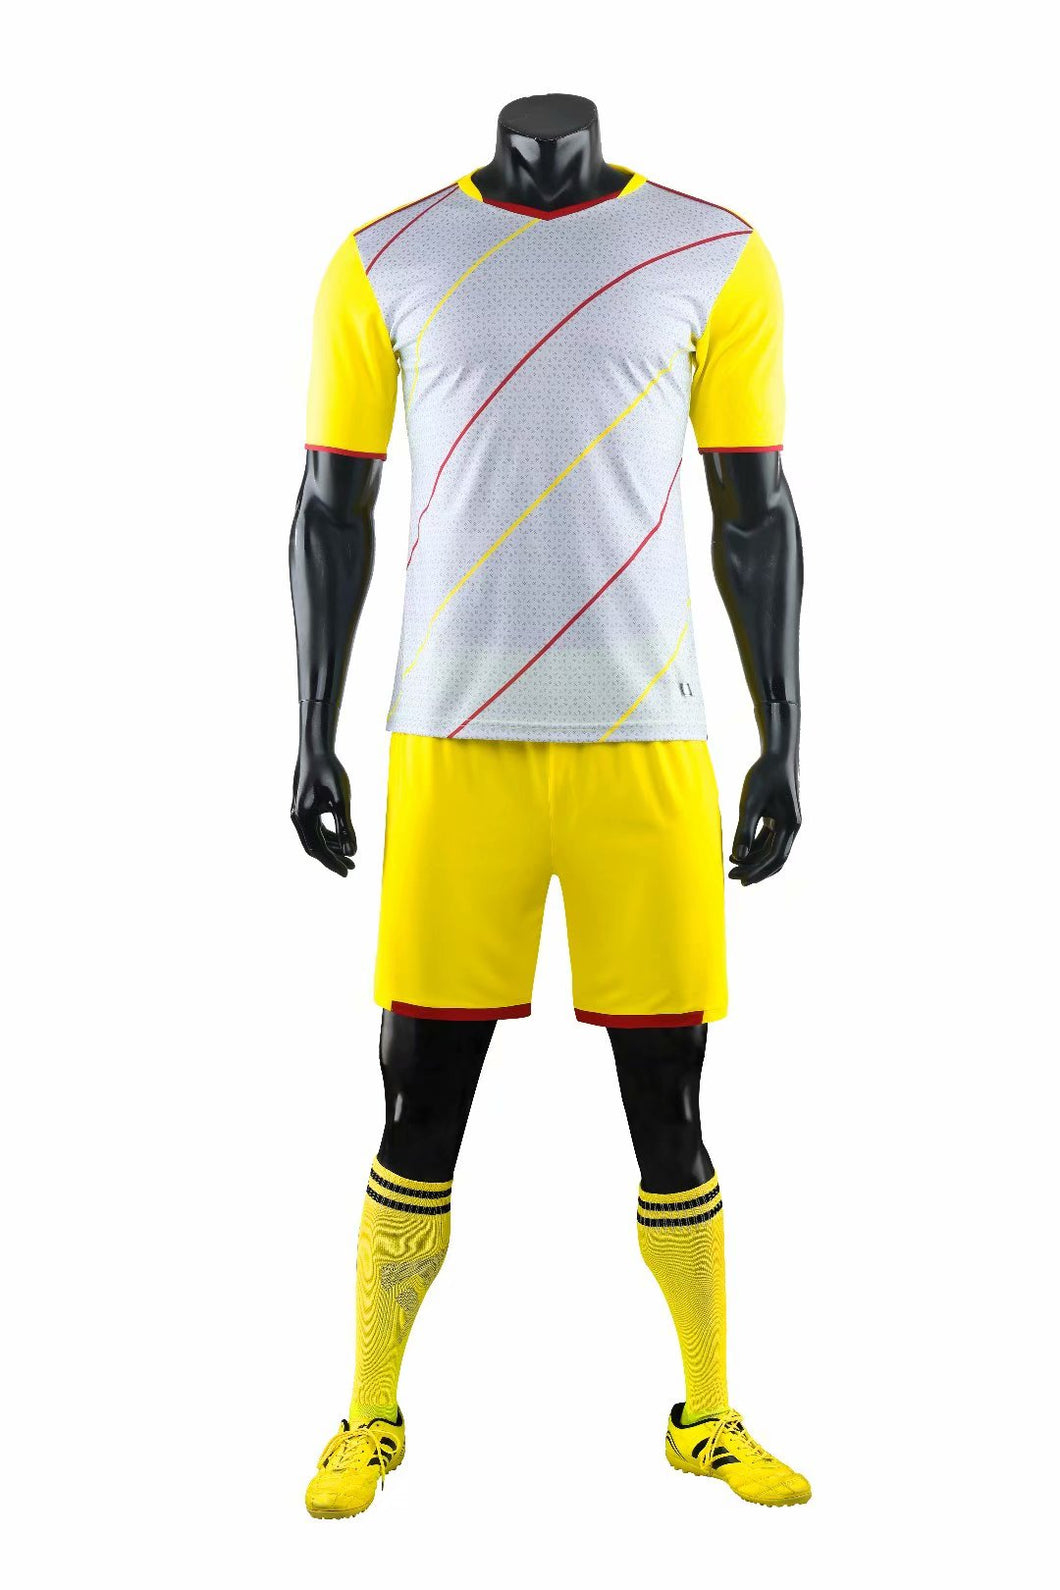 Full Football Kit - Yellow and White with Thin Stripe Design.